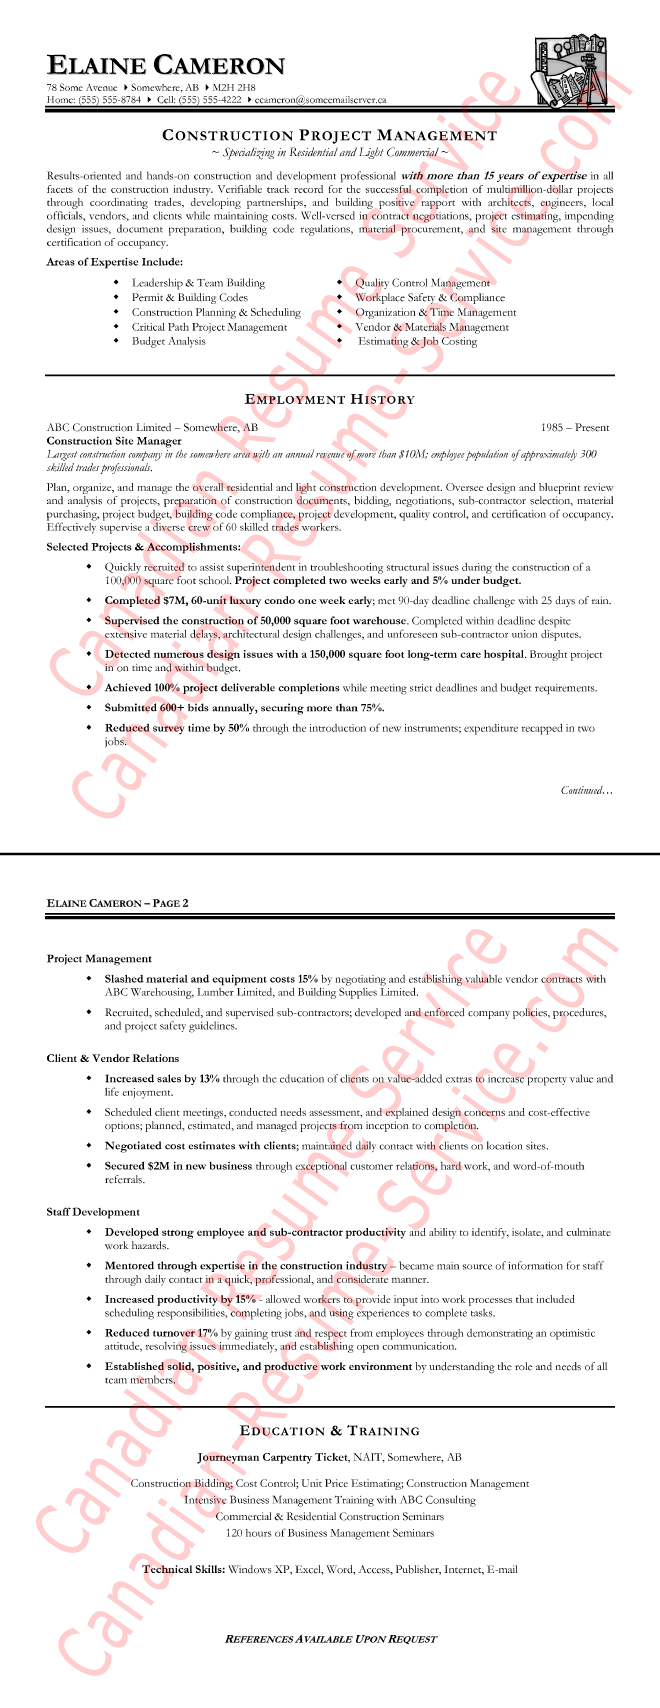 project manager example resume construction field manager resume sample resume example template for construction manager with - Sample Resume For Project Manager